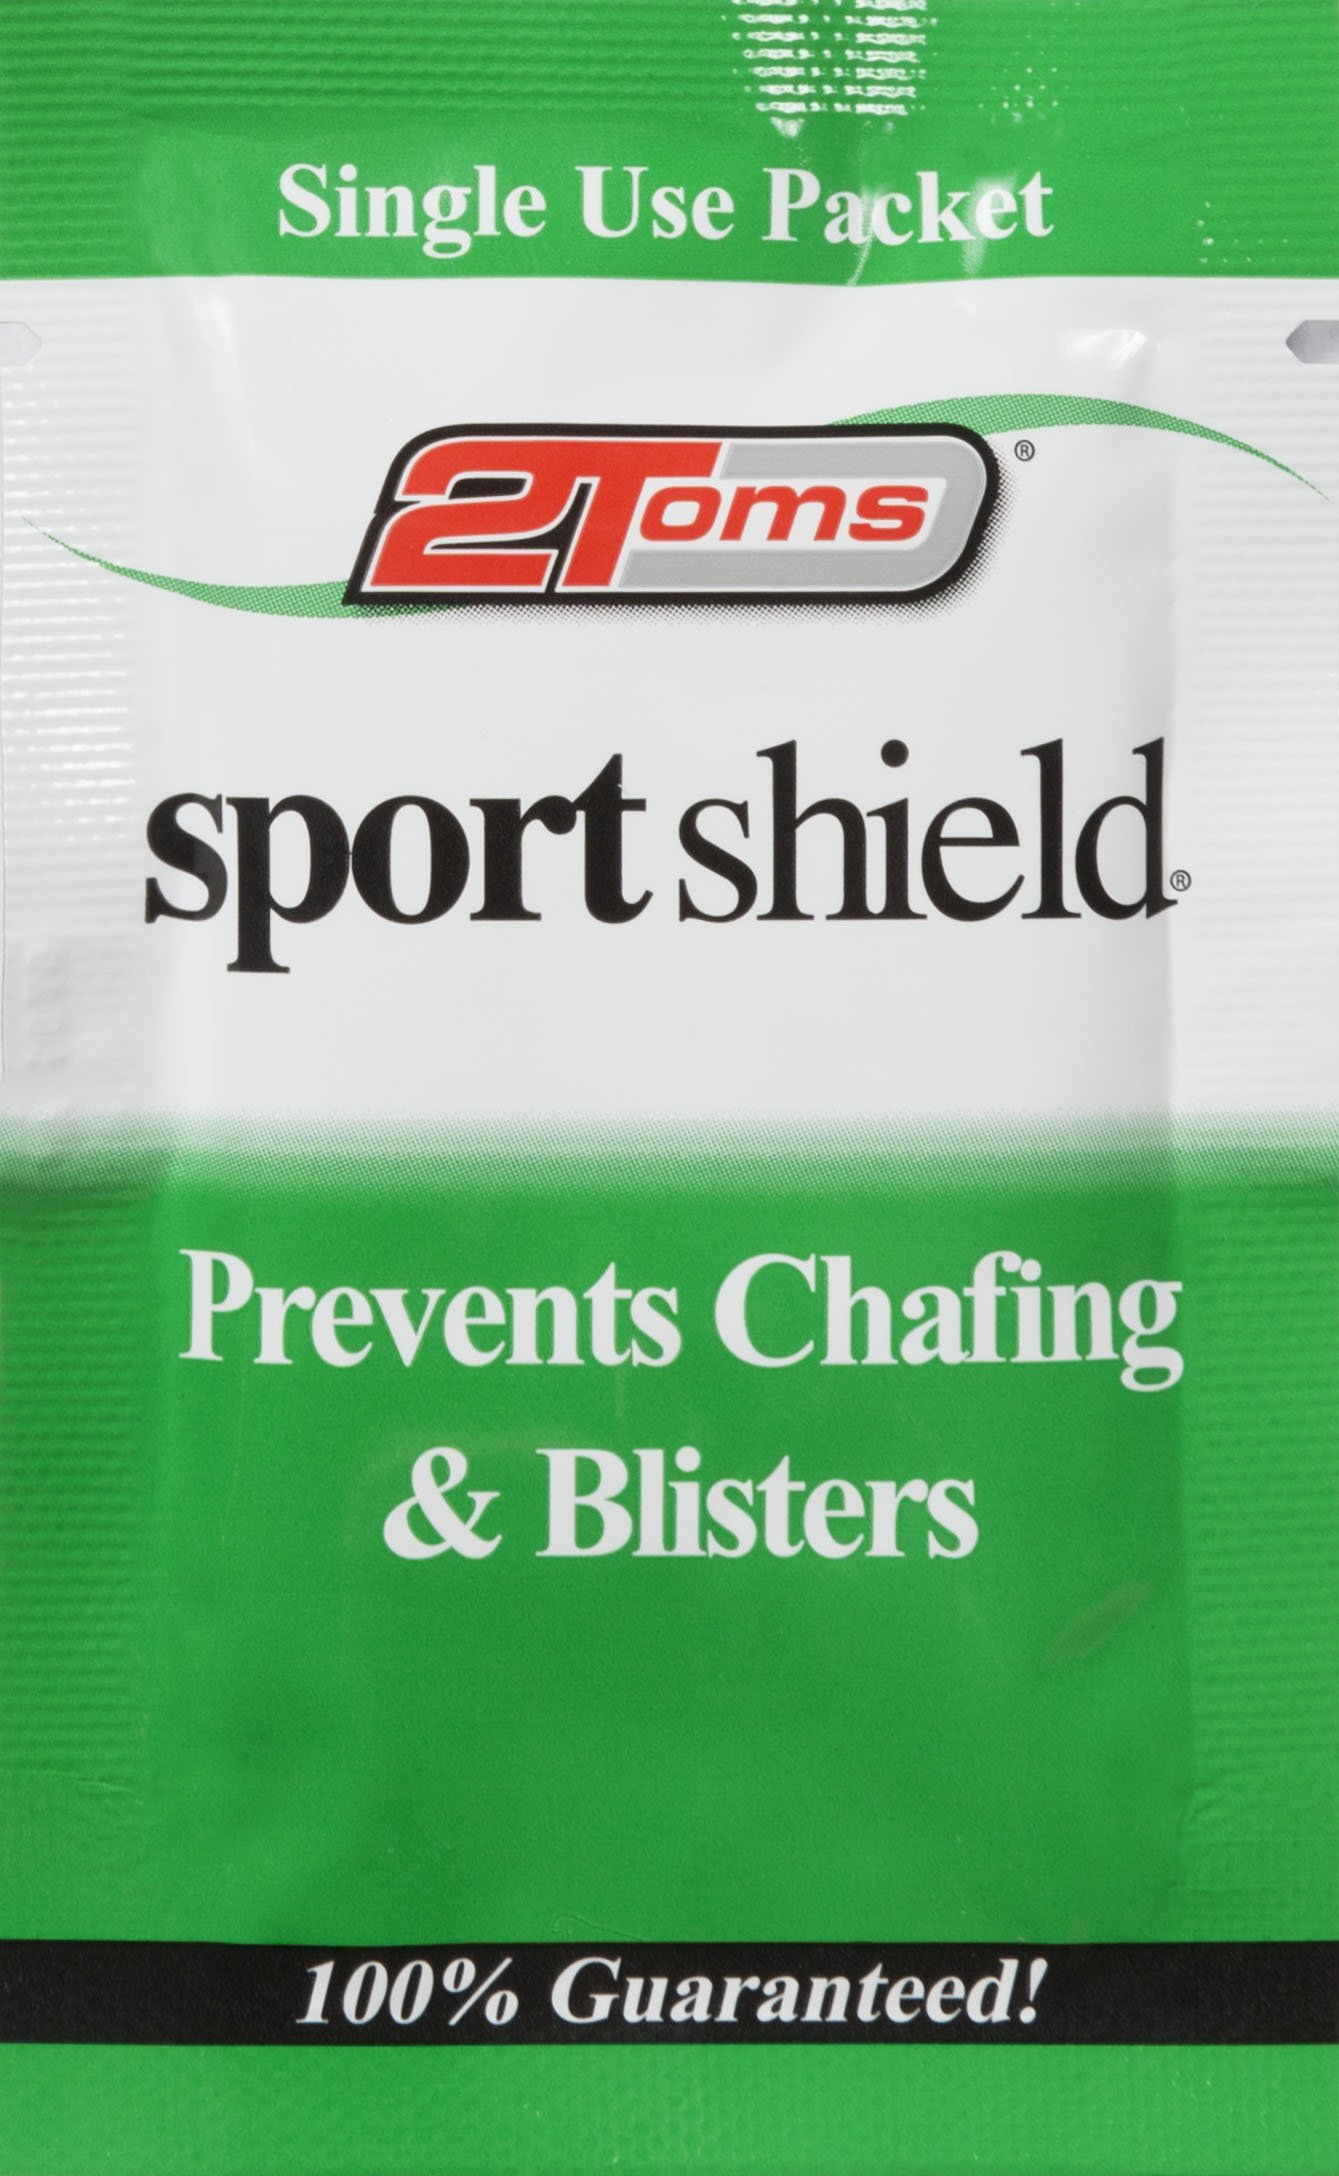 2Toms SportShield Chafing and Blisters Prevention Single Use Towelettes (6-Pack)